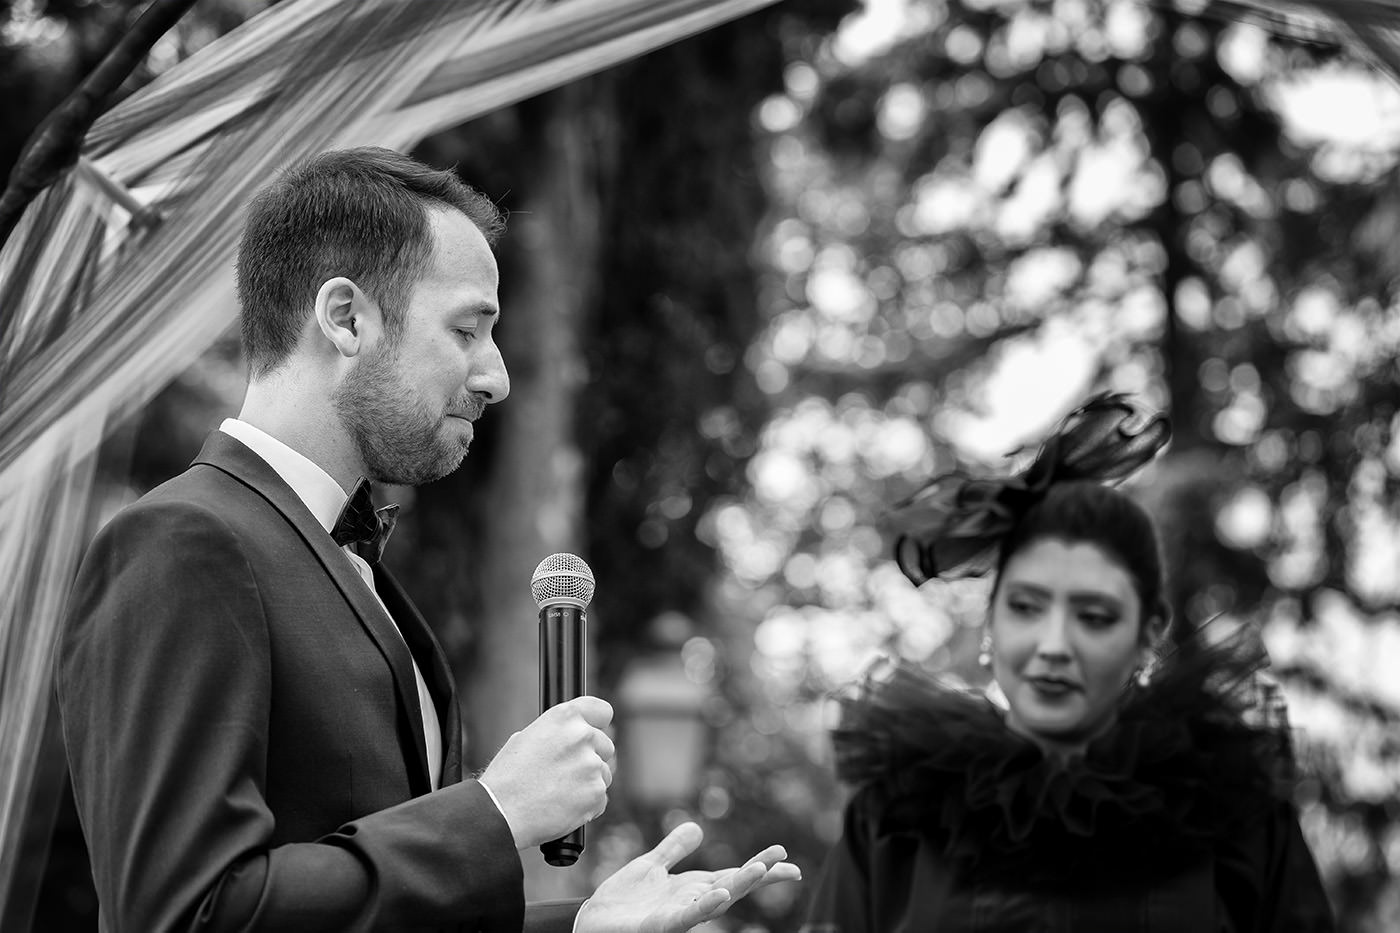 Same-Sex Wedding Photographer Florence: Timur & Guillaume. Emotional moment during the wedding ceremony